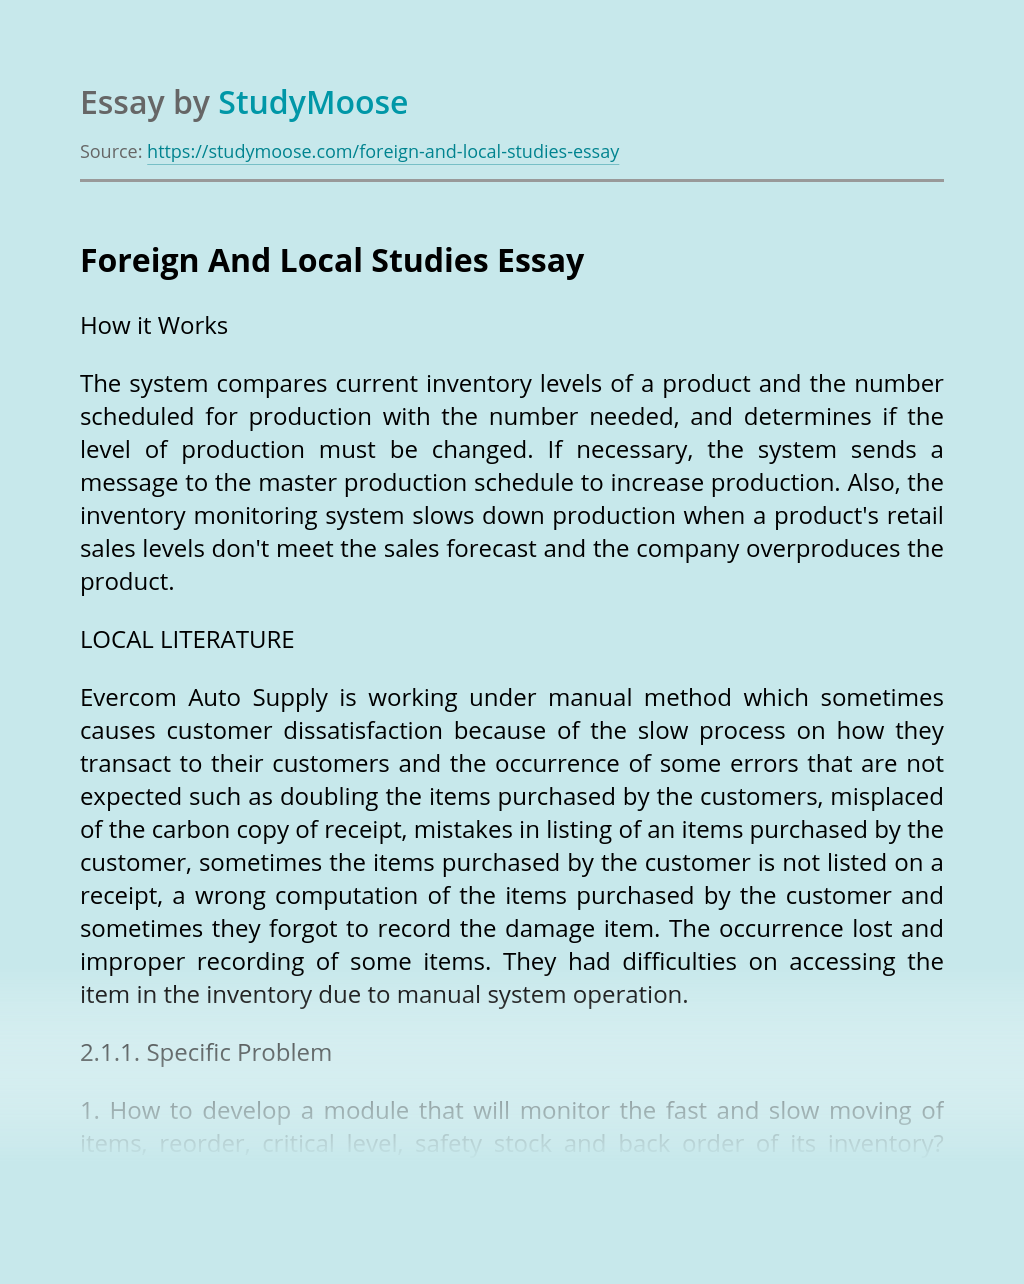 Foreign And Local Studies